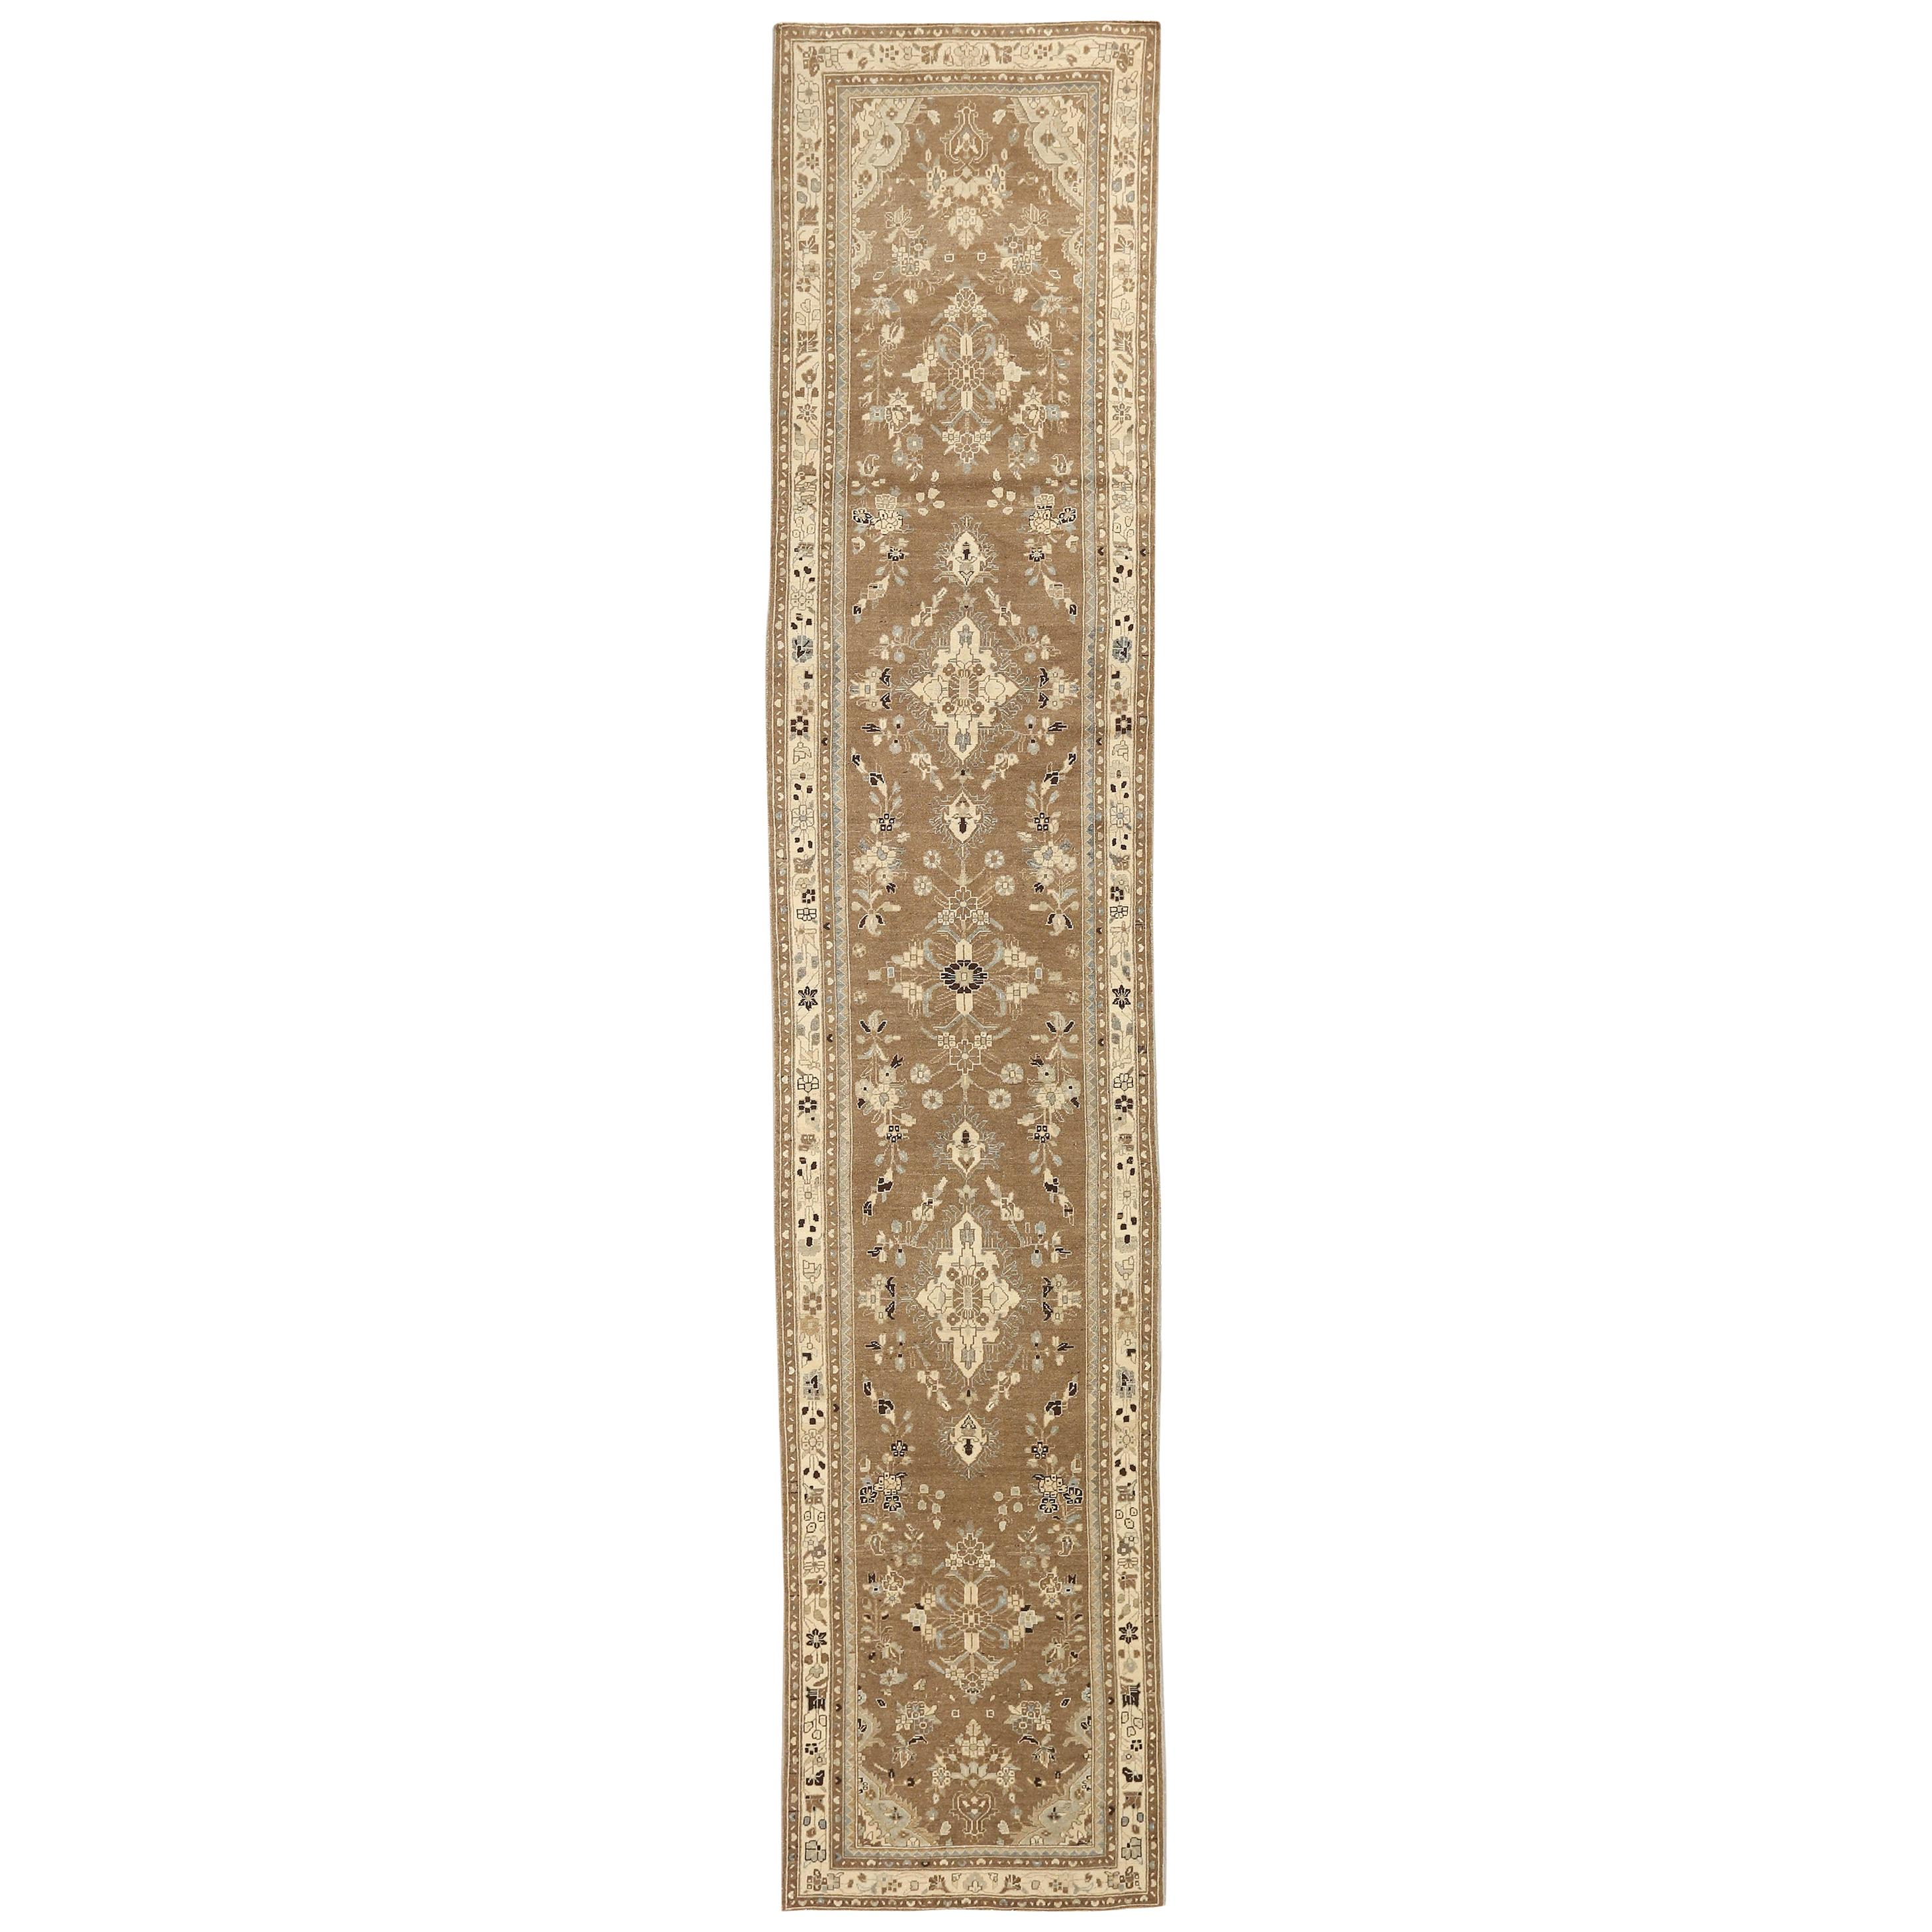 Antique Persian Malayer Runner Rug with Black and Ivory Floral Patterns